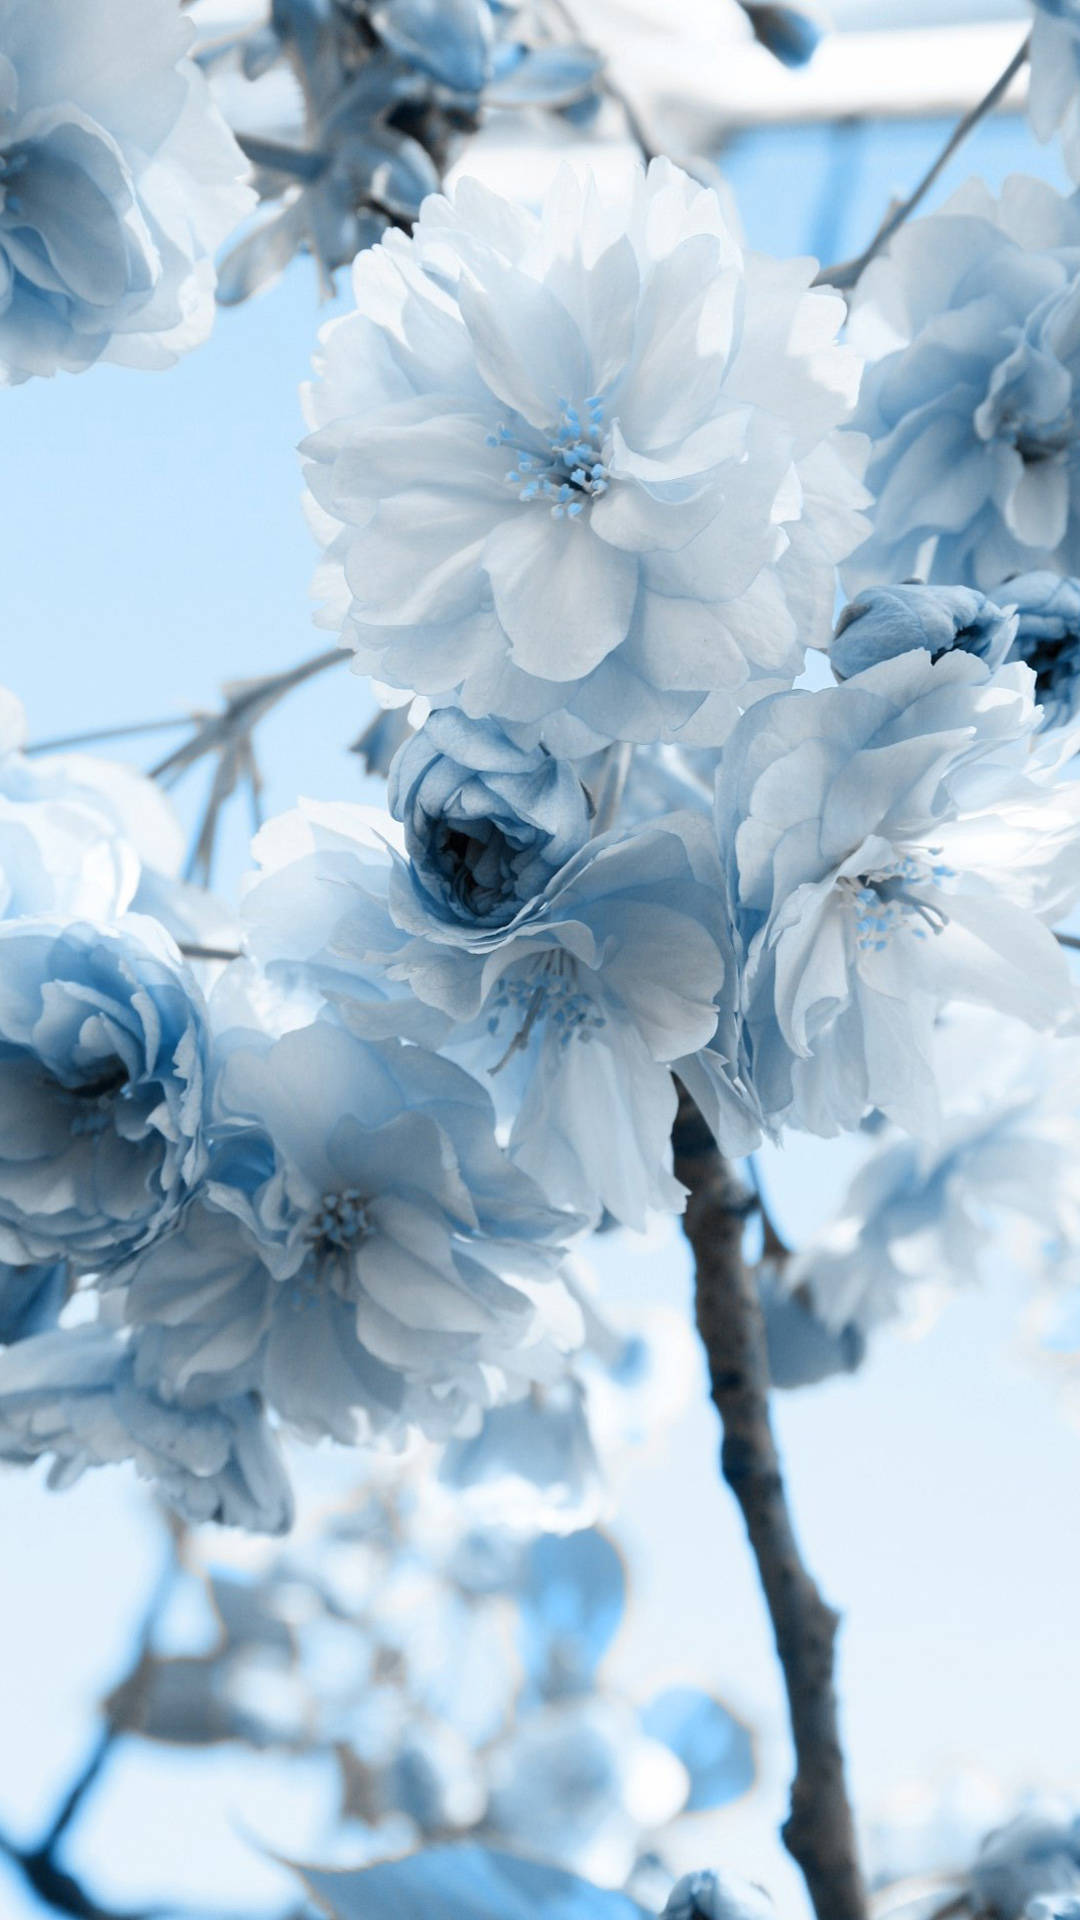 Blue and white flower HD samsung galaxy s4 wallpaper 1080x1920